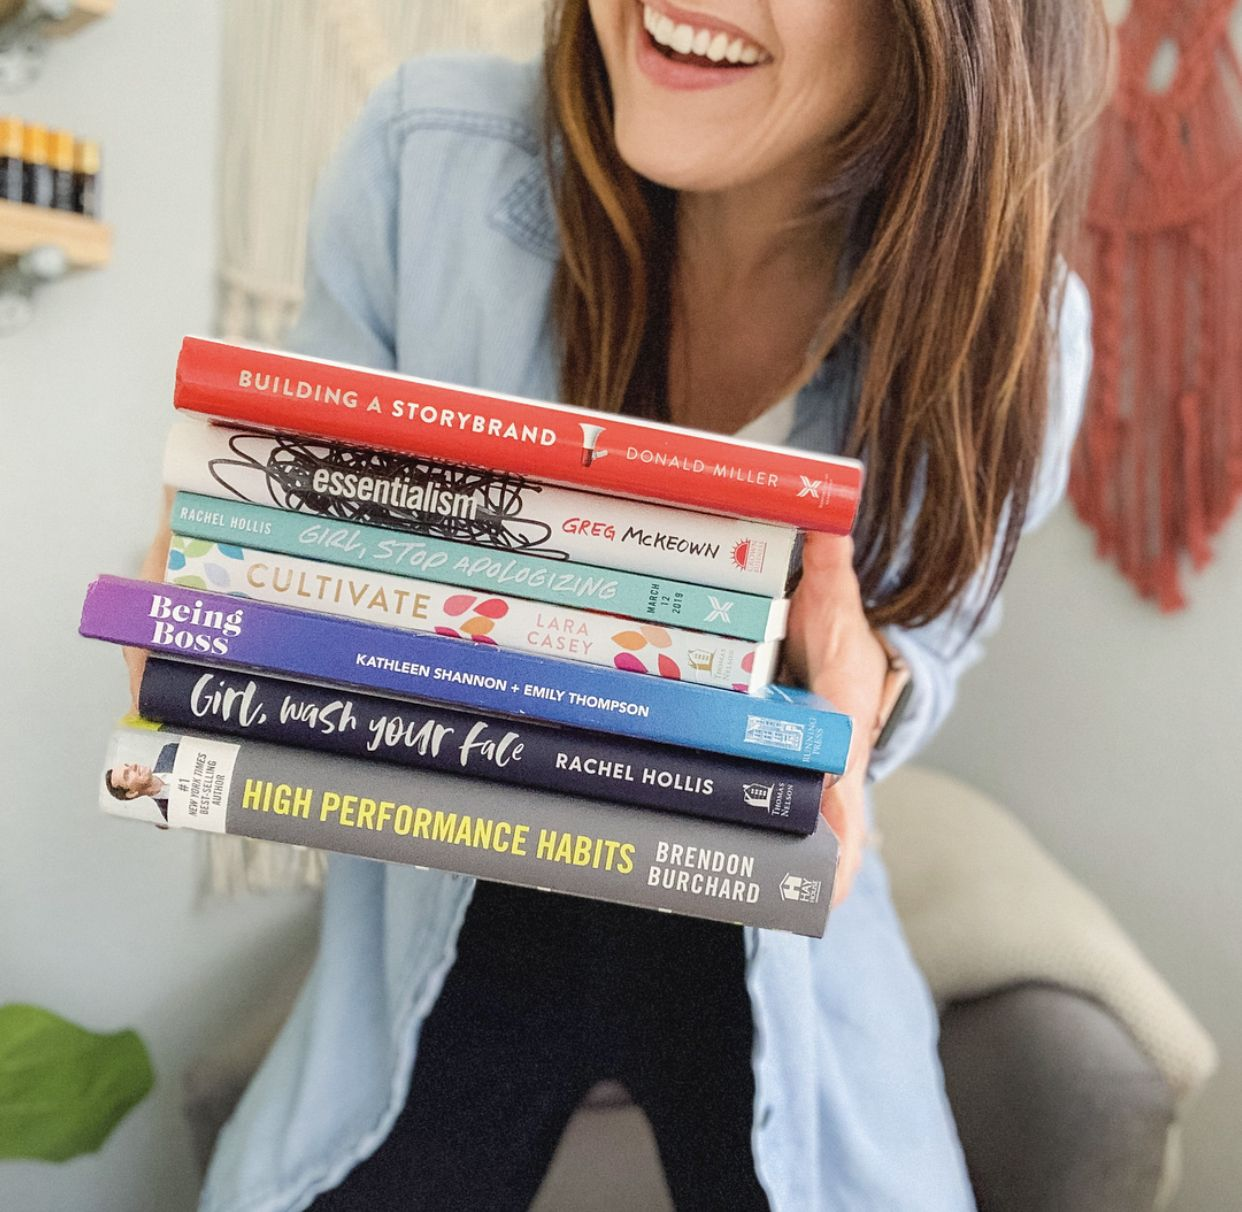 Books I Read in 2018 That Made Me Better is part of Personal growth books, Personal development books, Inspirational books, Book club books, Books, Boss babe books - I devour personal development books like they're going out of style  No shame either because they have totally rocked my world in the best way  Over the summer I did a lot of heart work and mindset shifting to get to the place that I'm at now  I'm always making it a priority to continue learning +